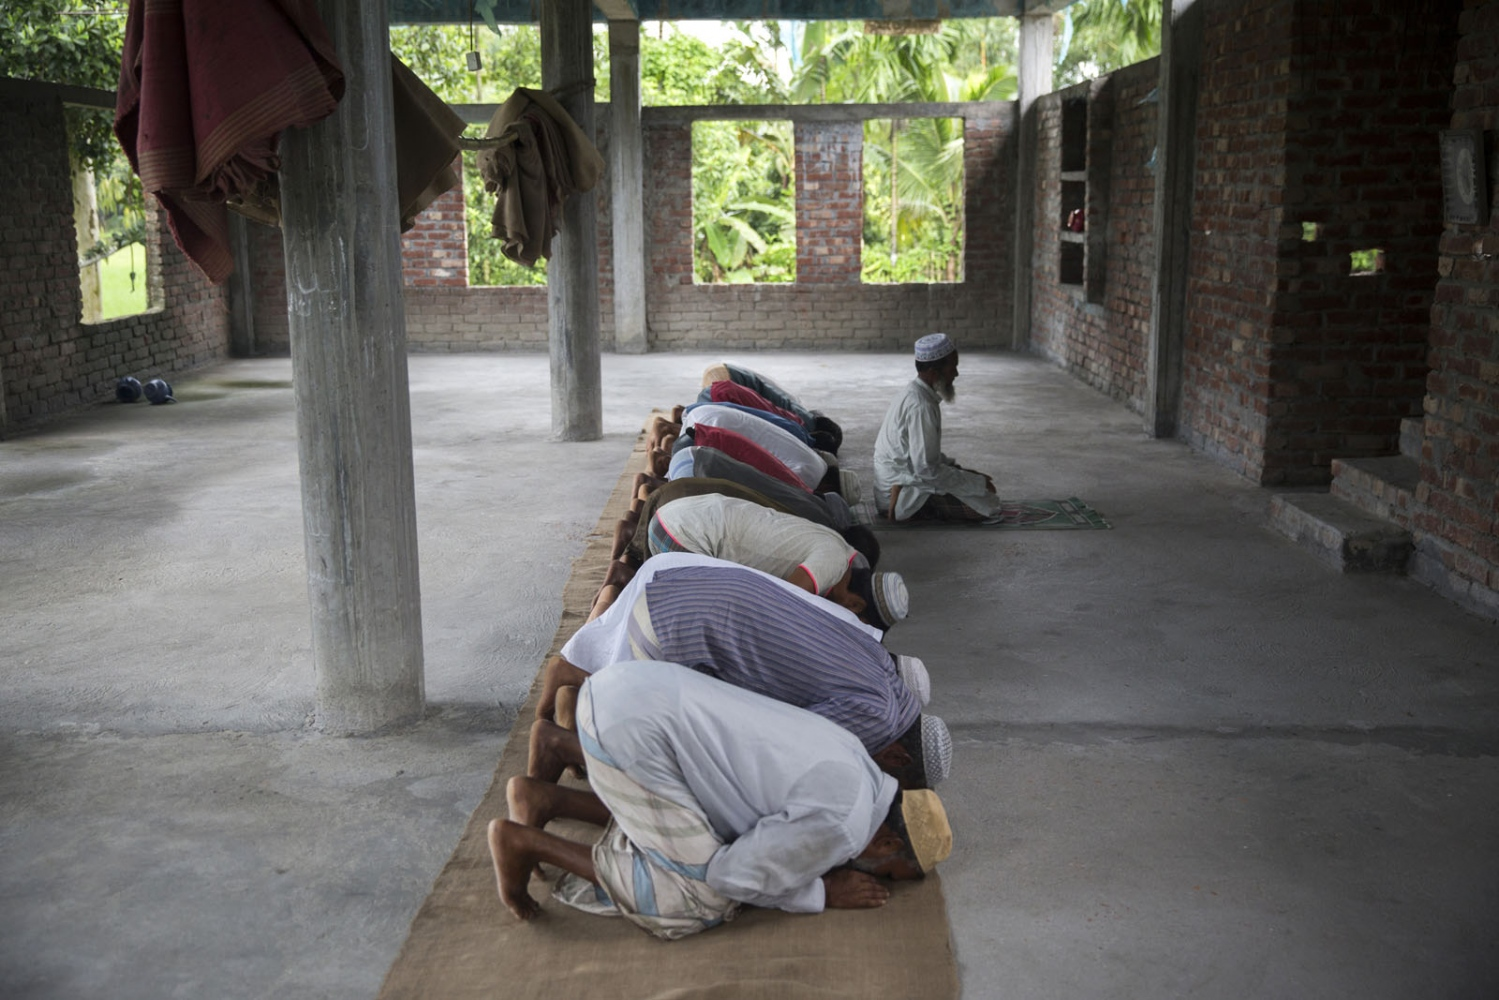 Muslim men from the Dhoholakhagrabari enclave pray in their mosque. The only solid structures that exist inside the enclaves, that aren't made of jute sticks and bamboo, are mosques. People have not risked building solid structures for housing due to the uncertainty of their situation and lack of roads to bring in the heavy material. With no outside help the locals collected donations and built this unfinished structure to use as their place of pray.